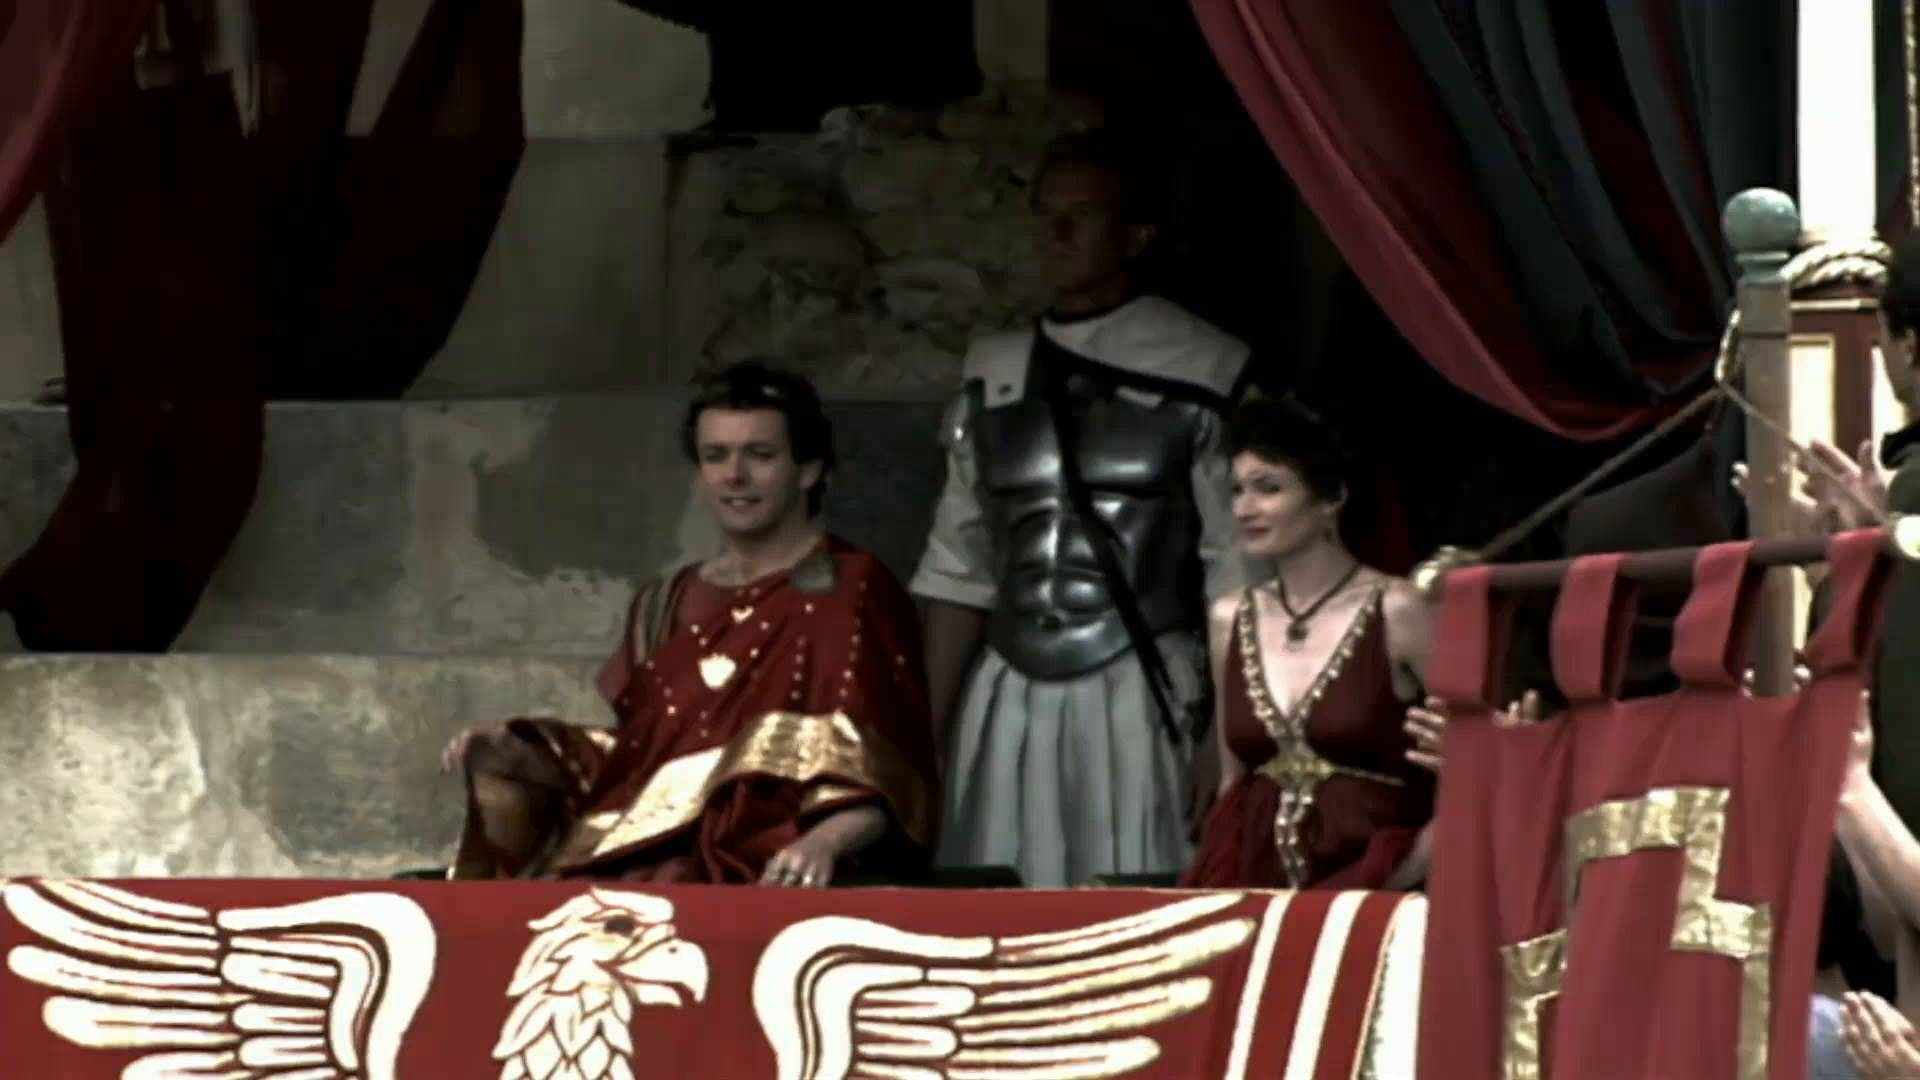 Ancient Rome: The Rise and Fall of an Empire Season 1